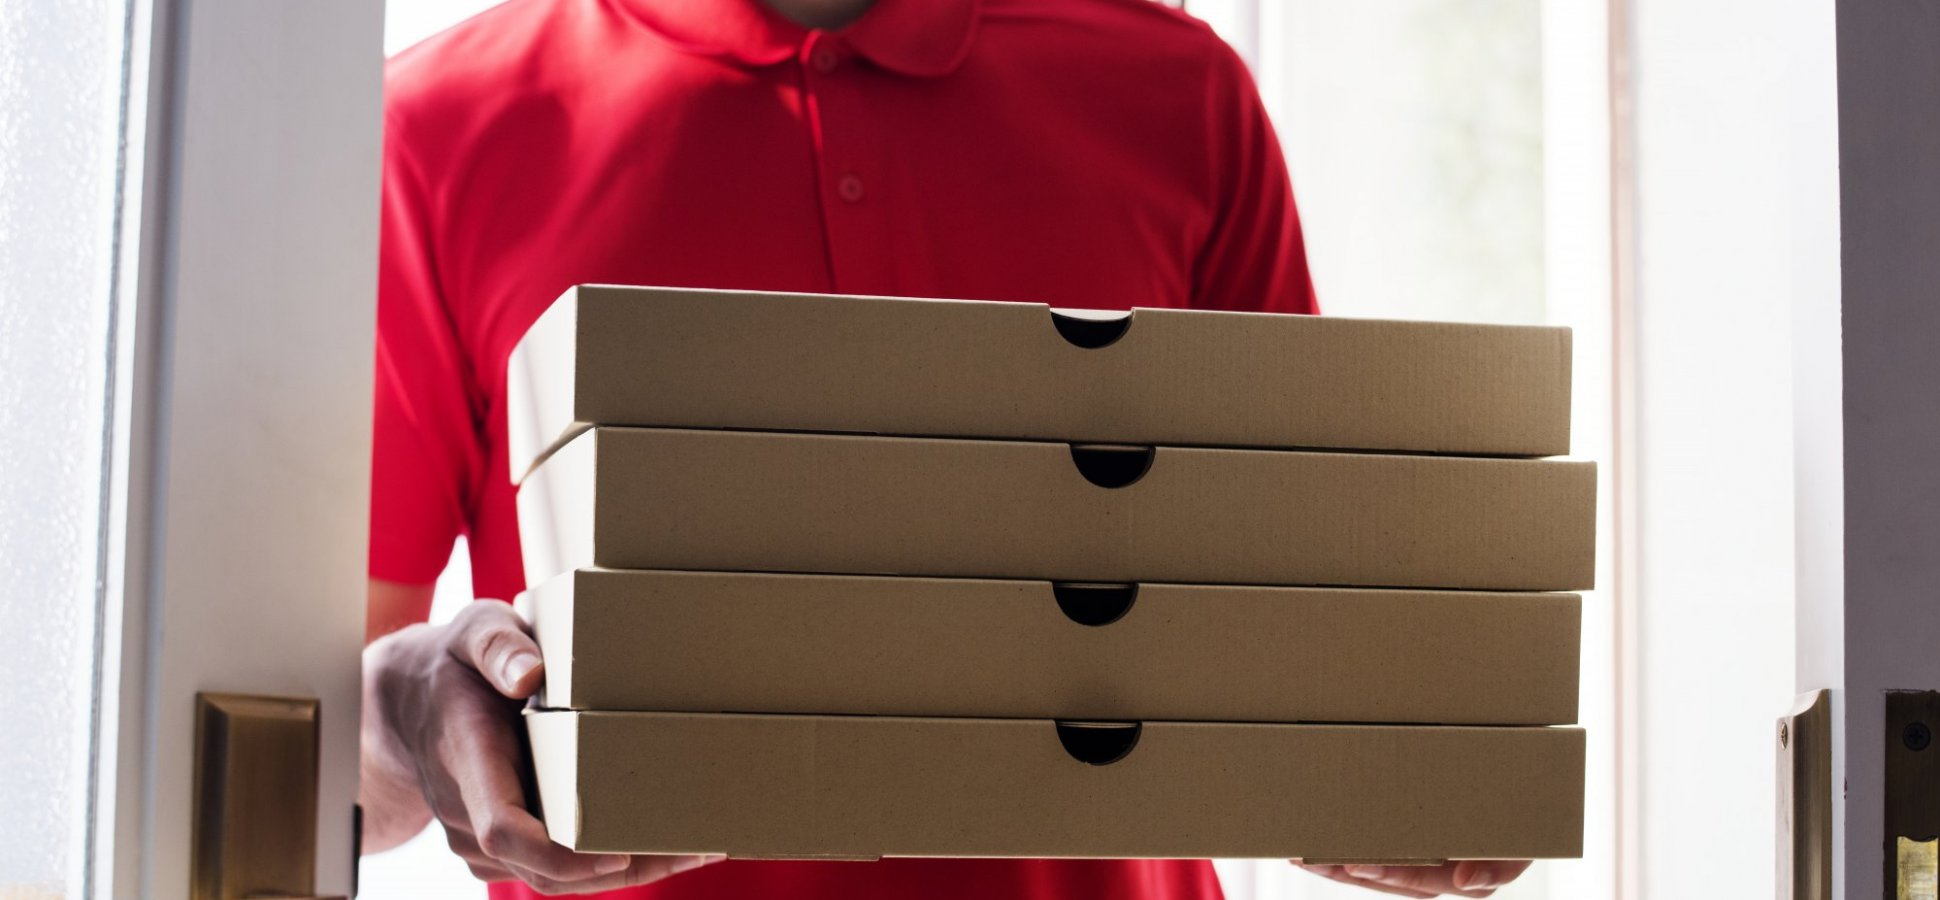 The Most Vital Leadership Lesson You'll Get All Week Comes From This Pizza Delivery Guy's Astonishing Talent